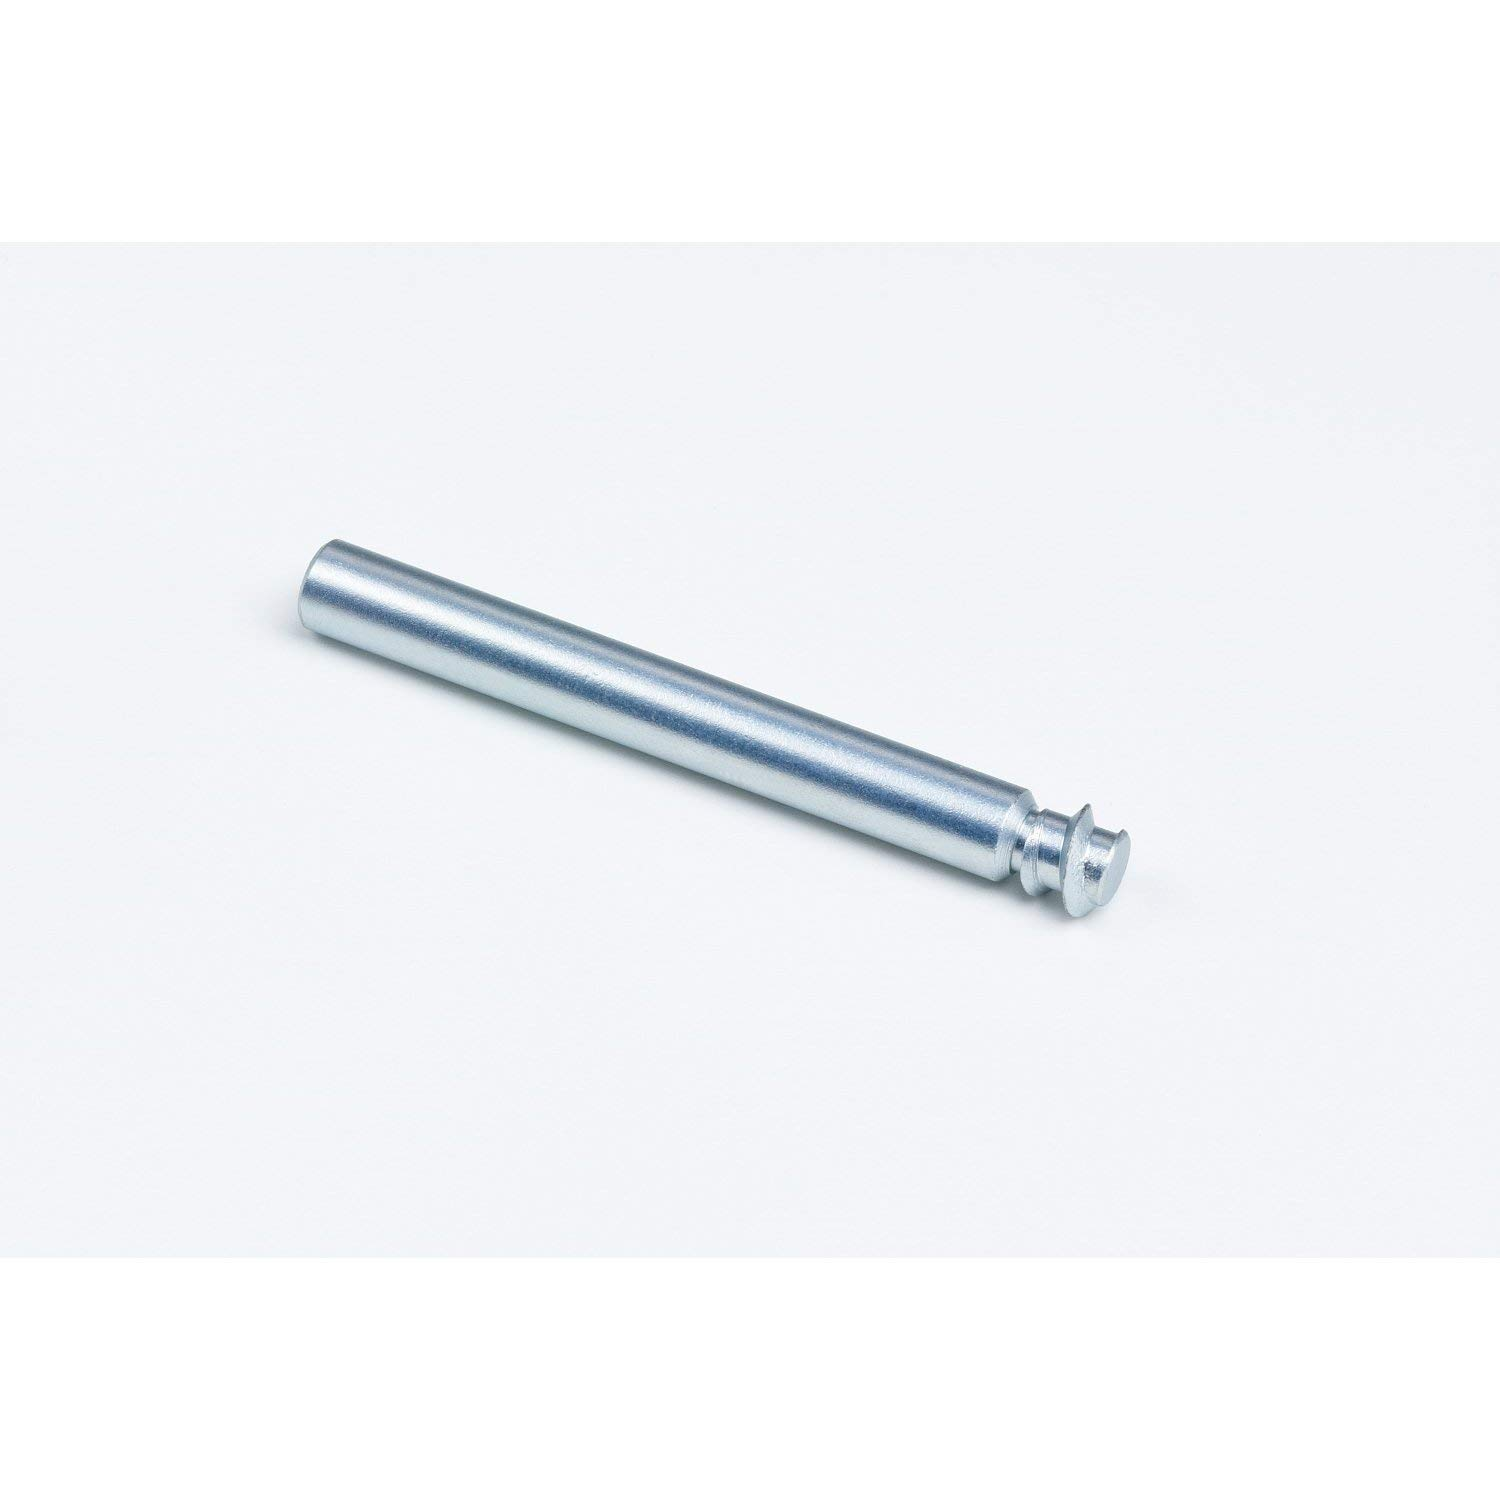 2 Length 3M Roloc TS and TSM Mandrel 85097 Pack of 5 Pack of 5 2 Length